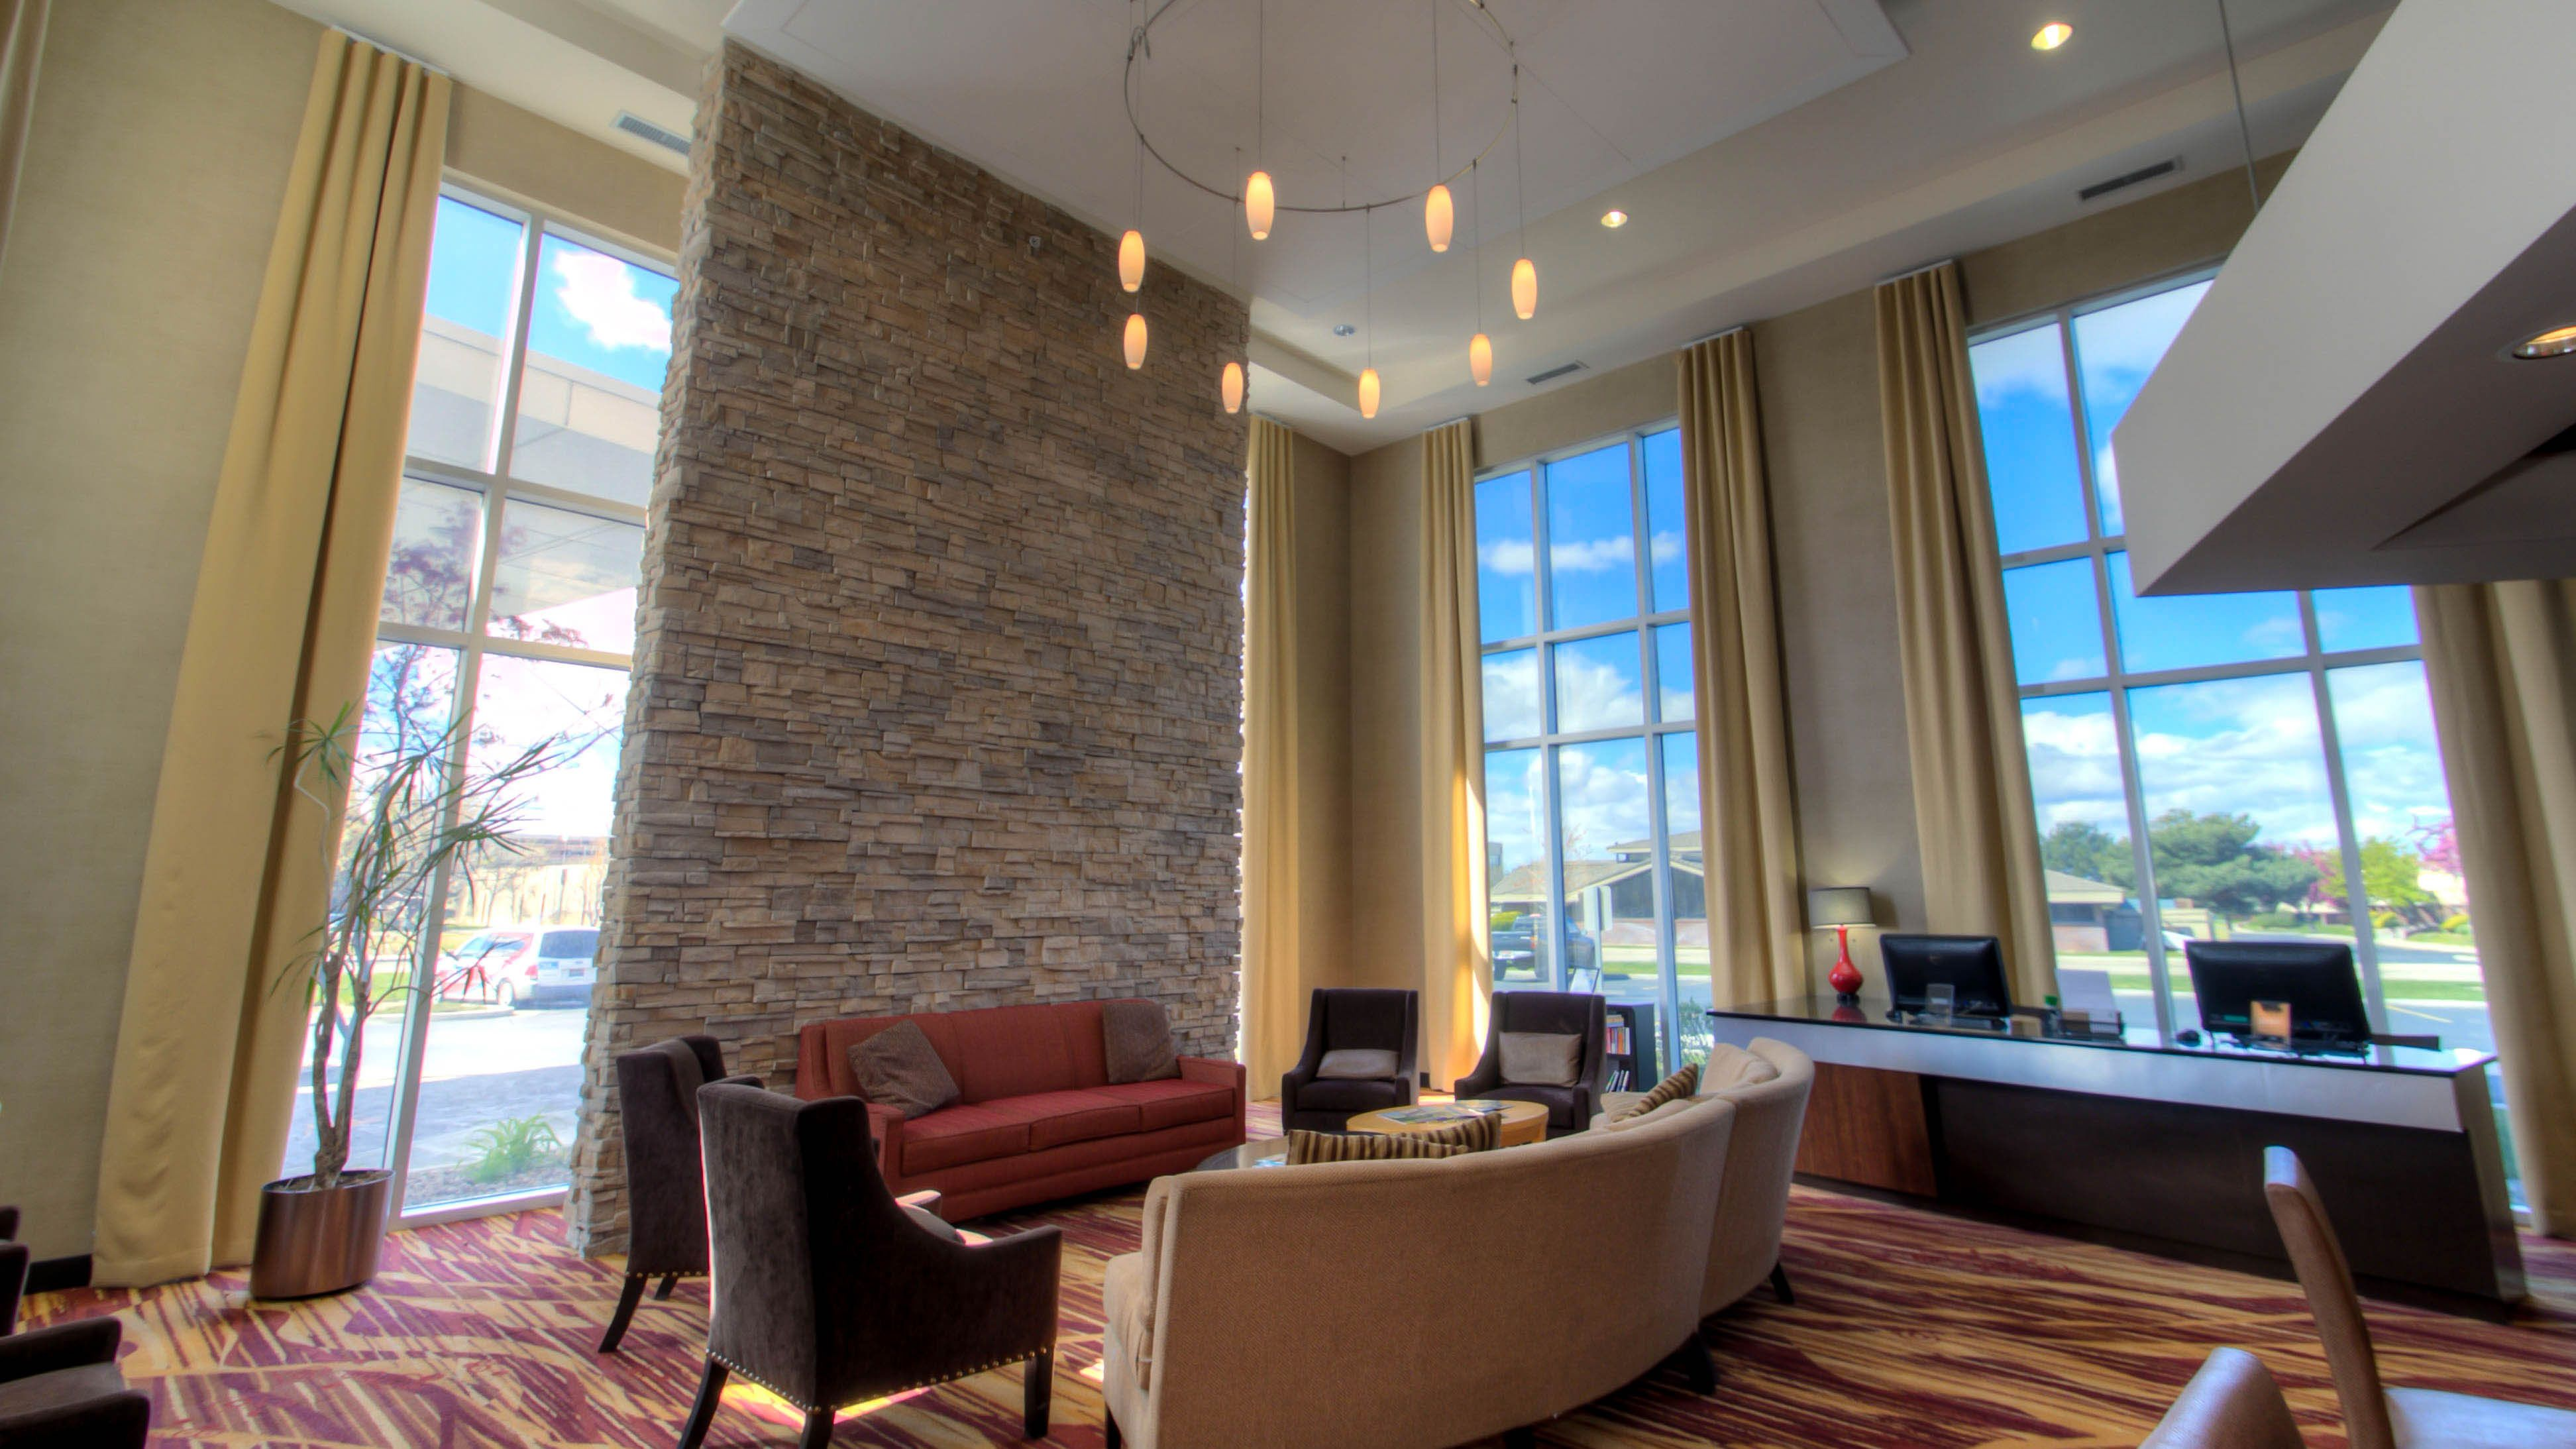 Holiday Inn Boise Airport image 2